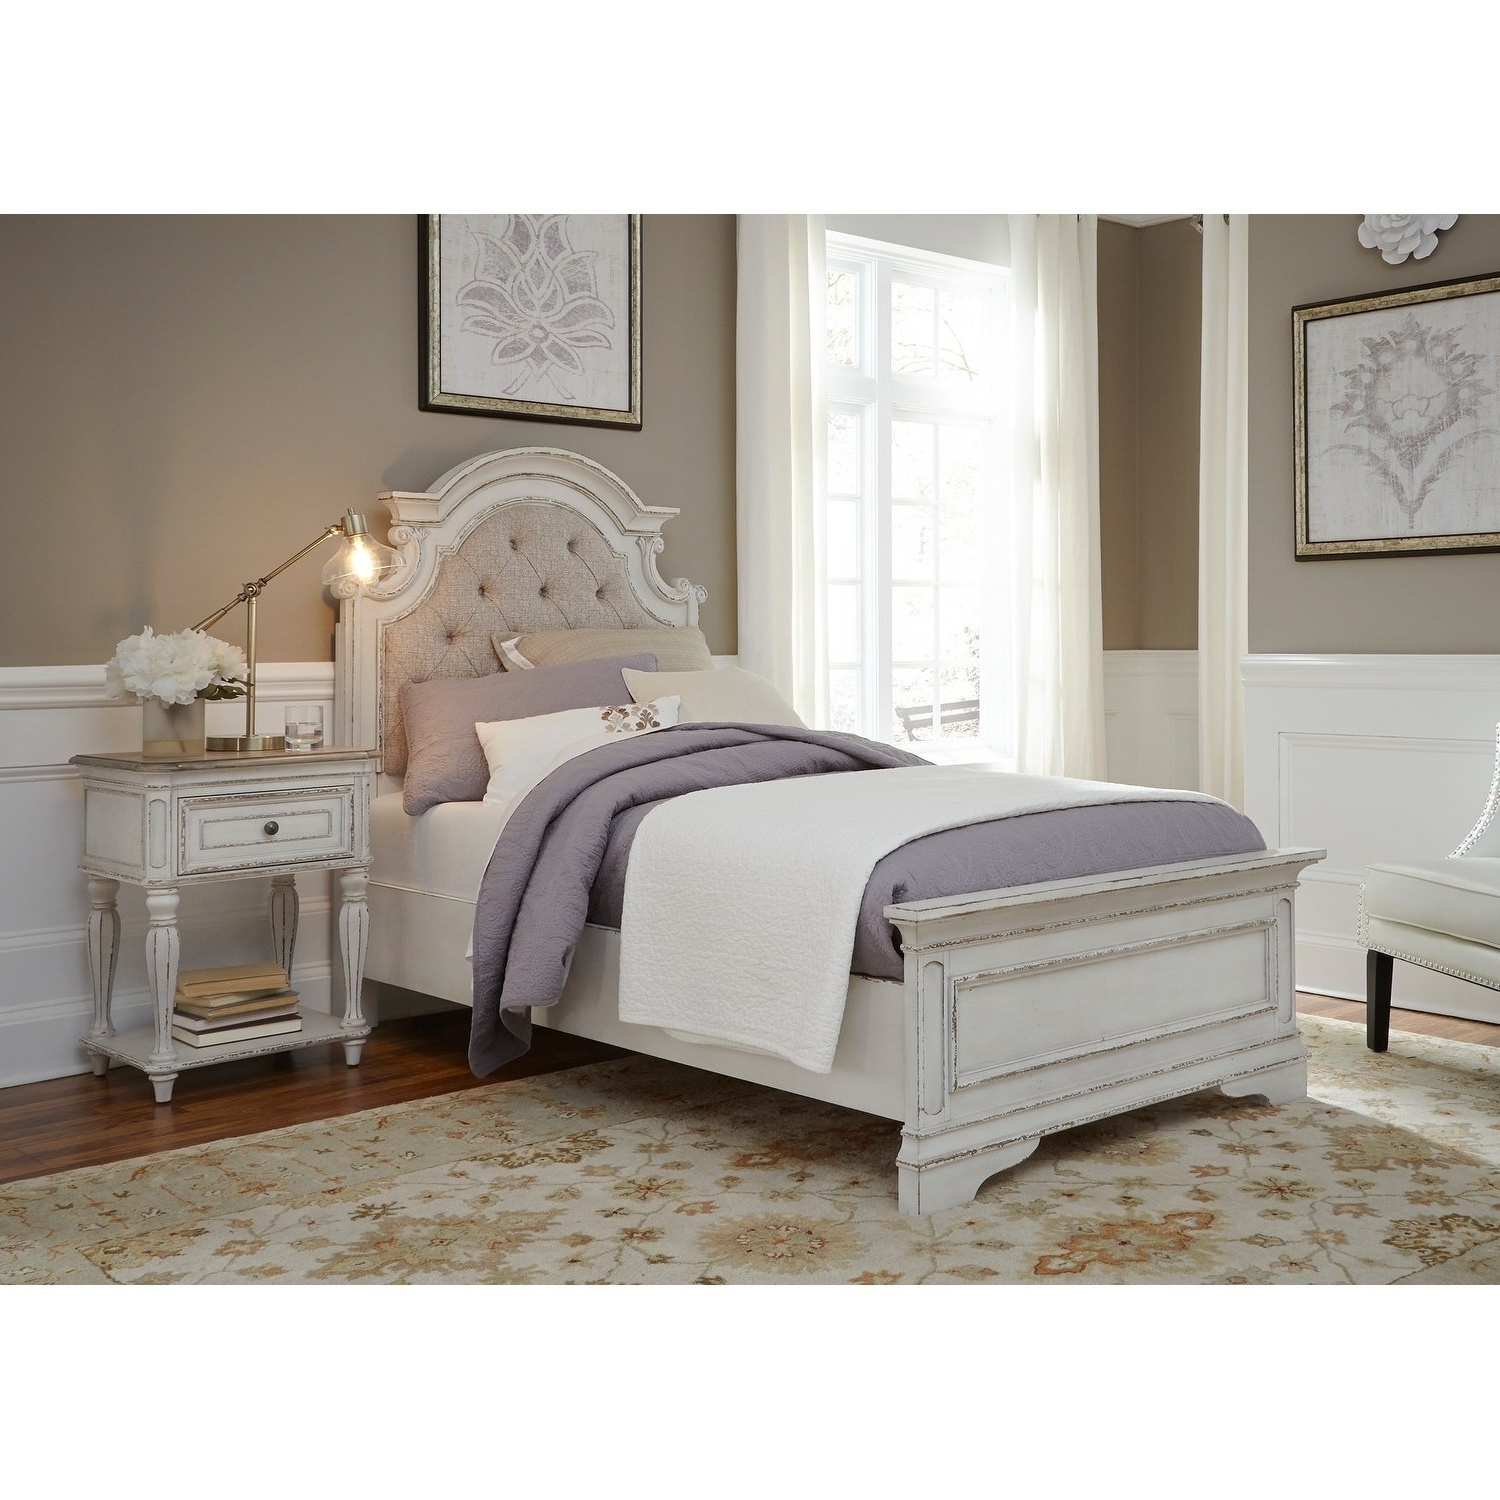 Widely Used Shop Magnolia Home Antique White Upholstered Bed – On Sale – Free Pertaining To Magnolia Home White Keeping 96 Inch Dining Tables (View 25 of 25)